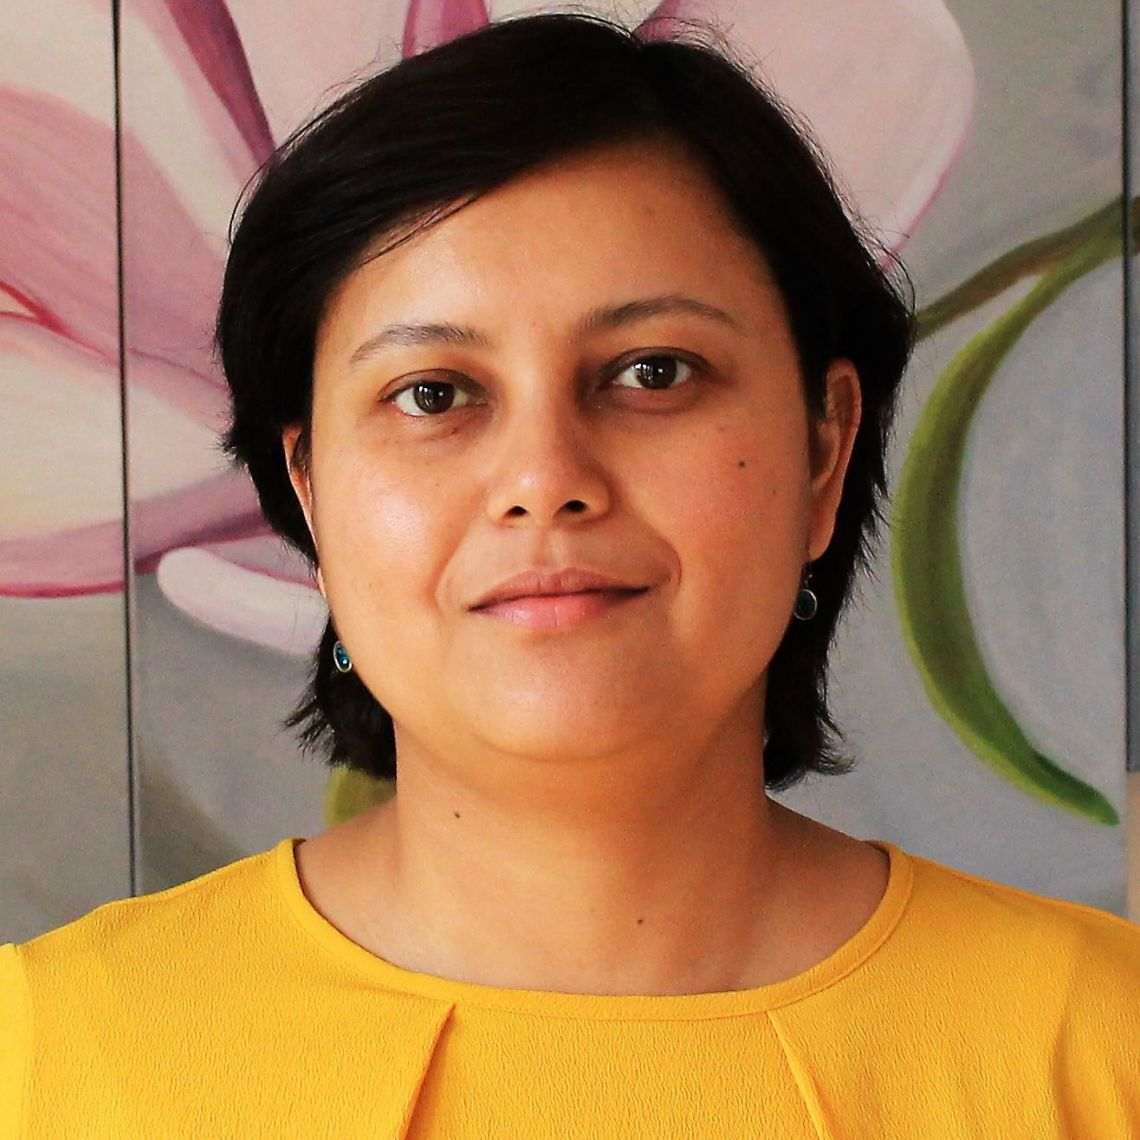 Associate Professor Manisha Nair